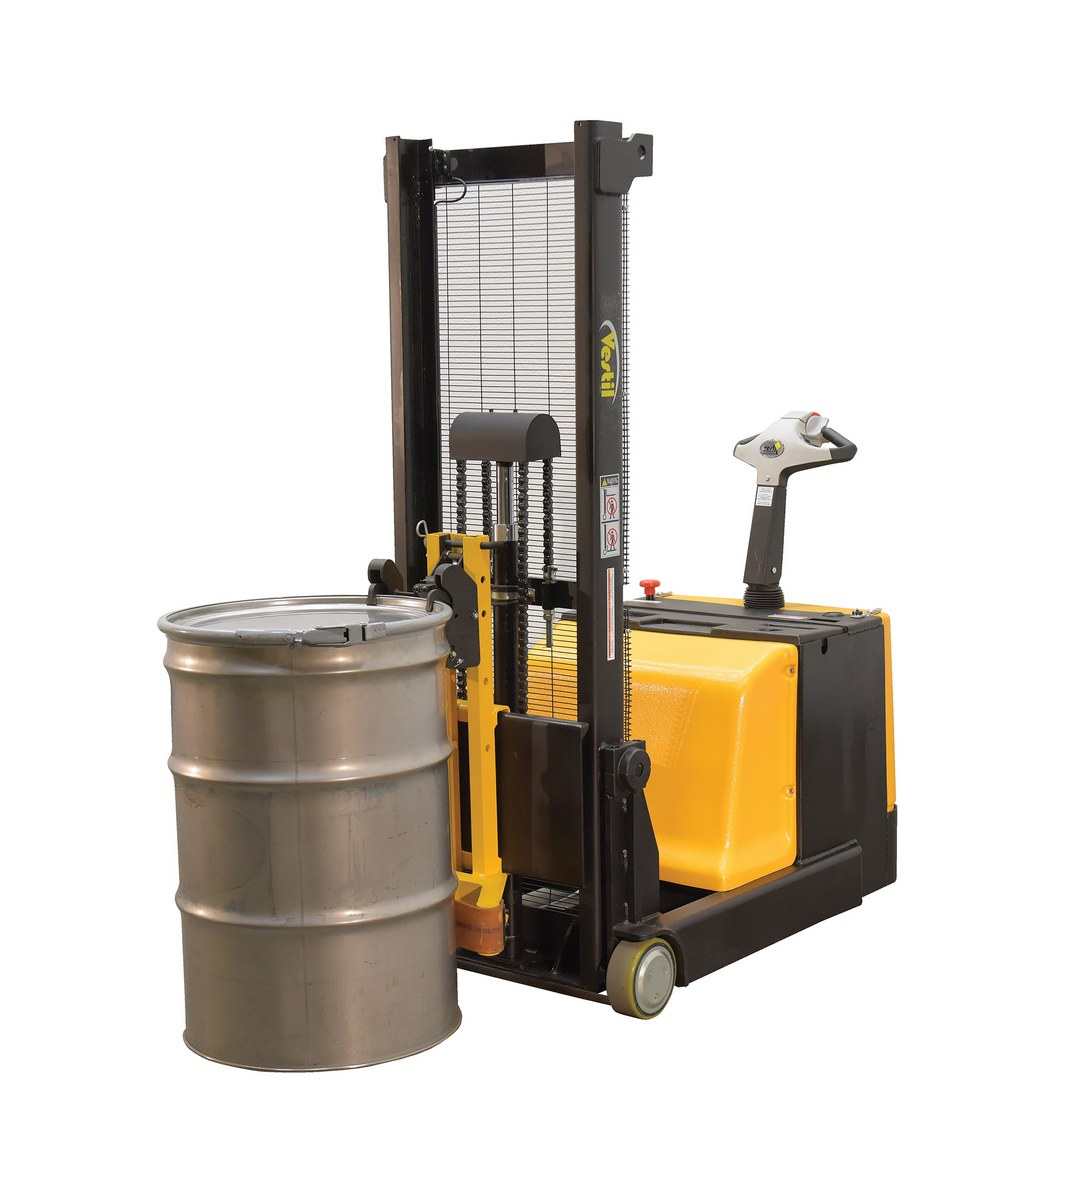 Vestil S-CB-62-DDC Counter-Balanced Drum Lifters